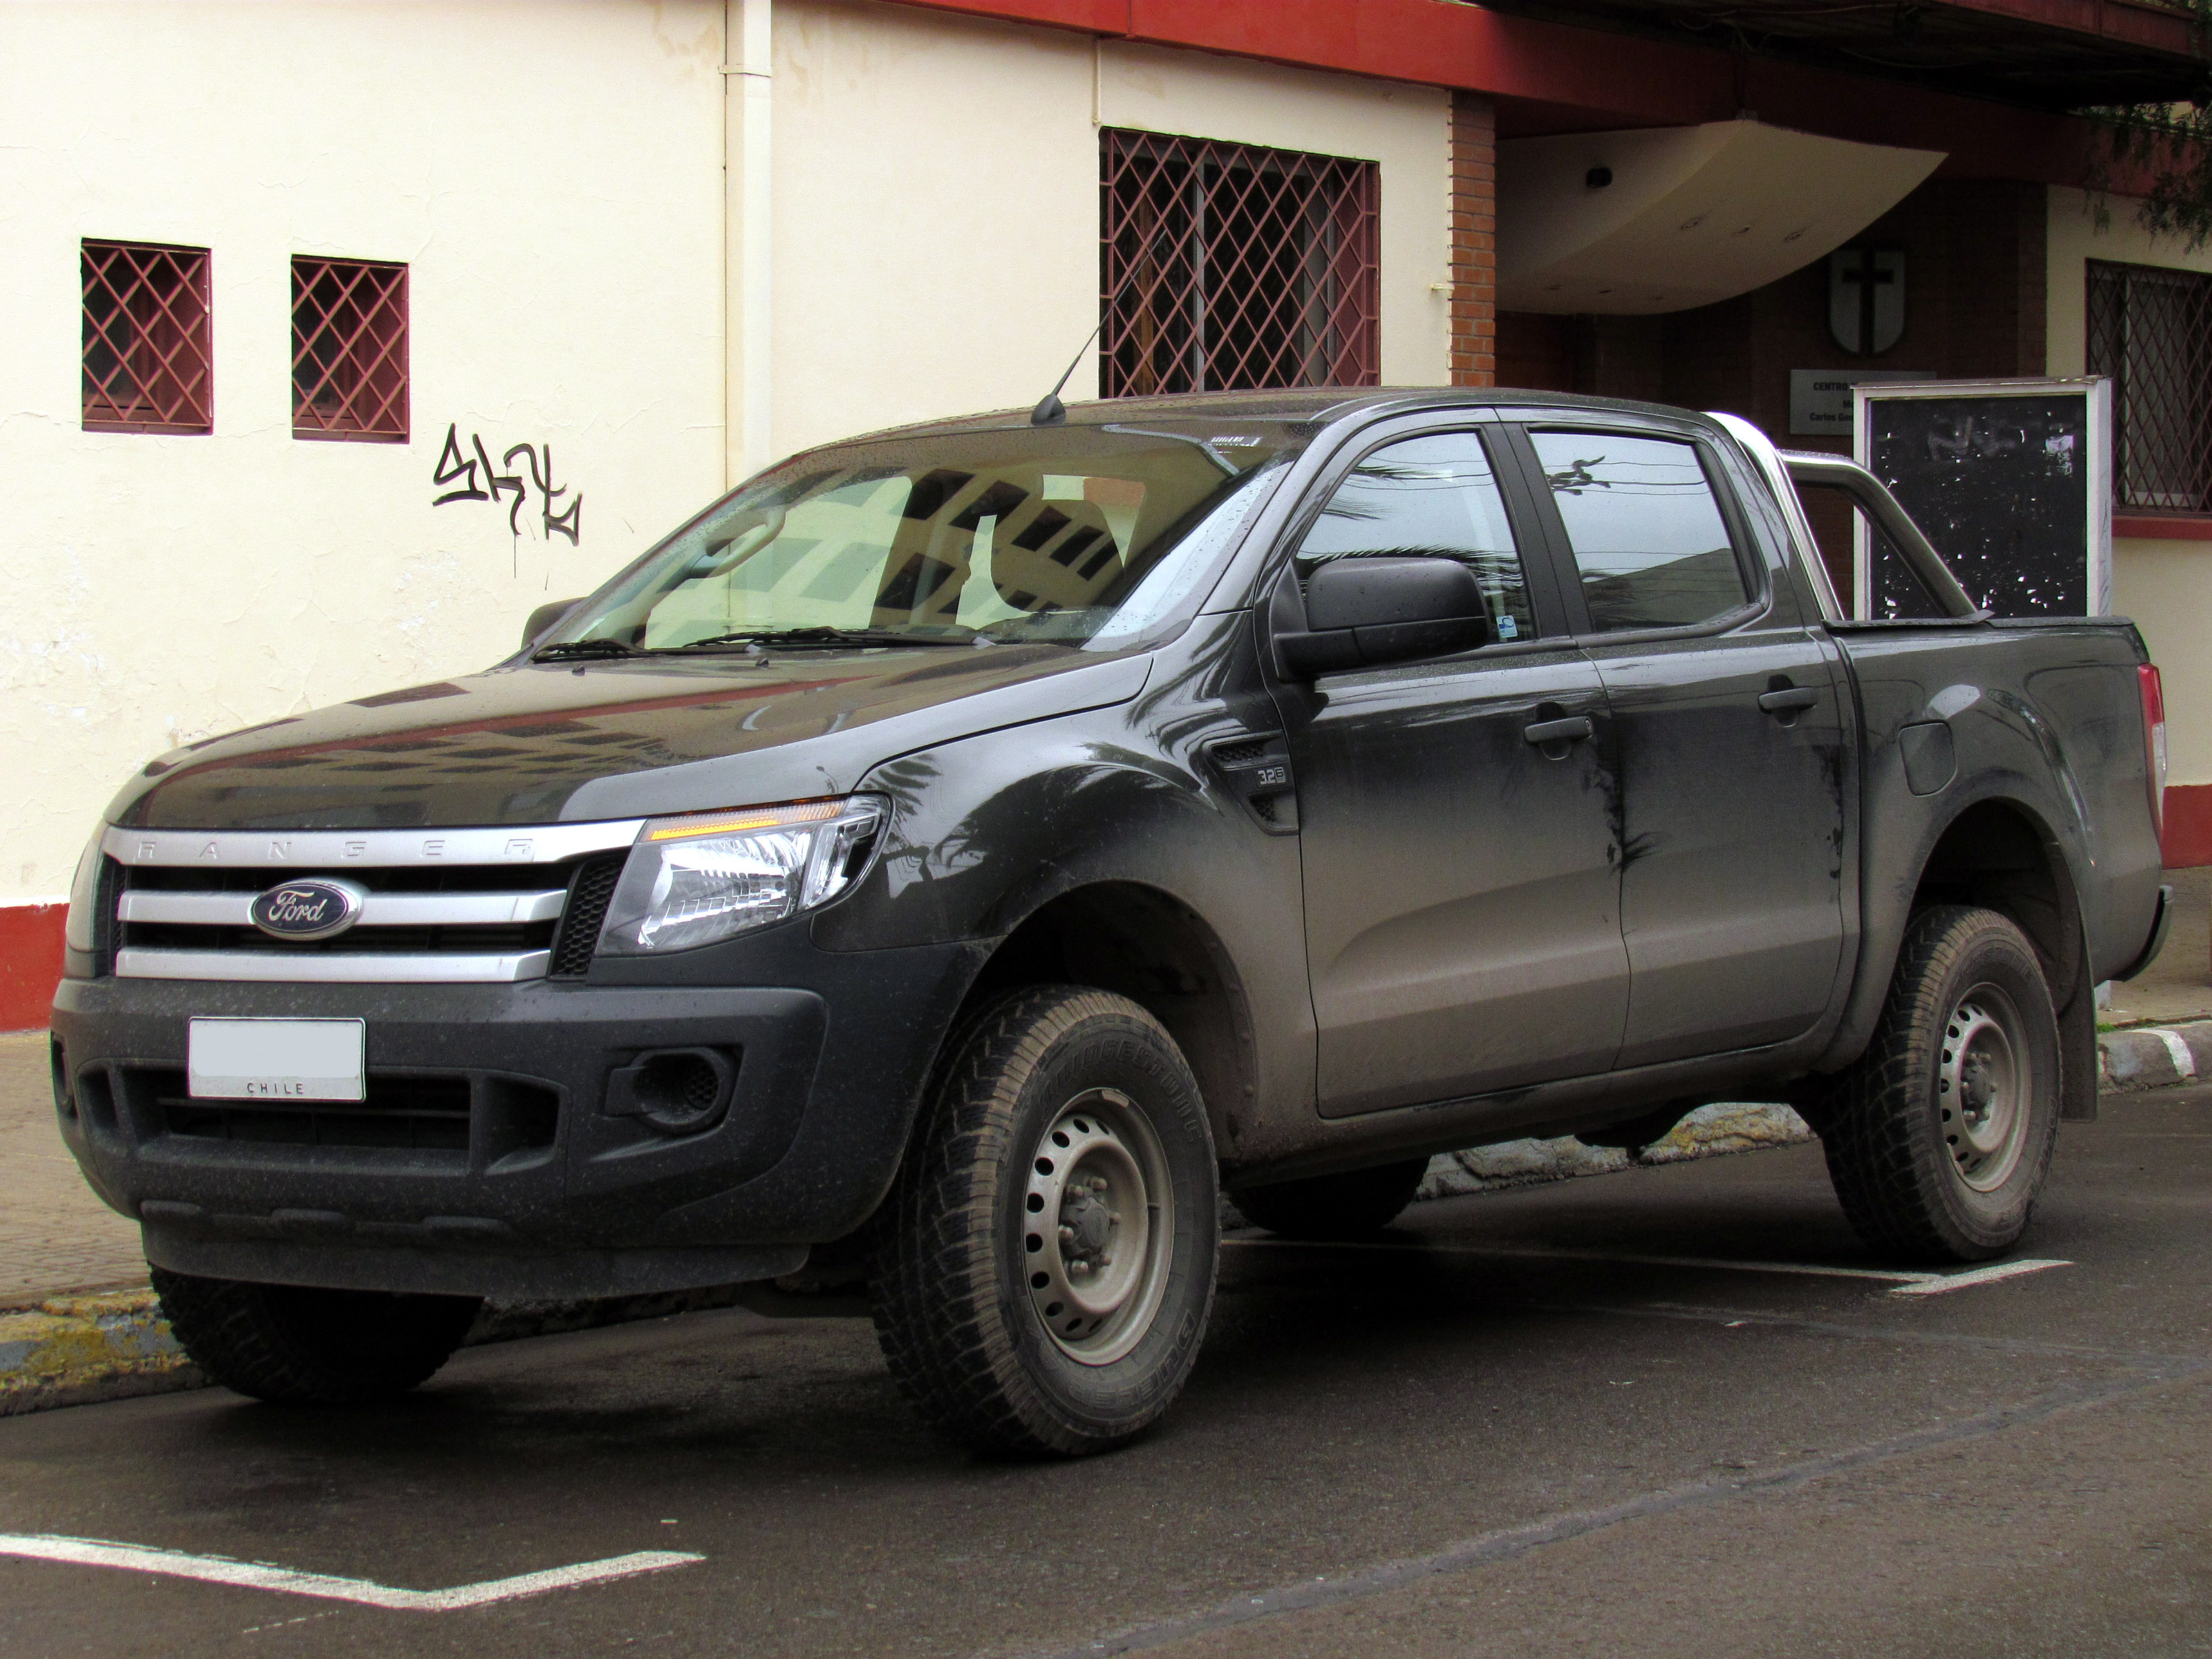 Fileford ranger xl 3 2 tdci 2014 14928304481 jpg